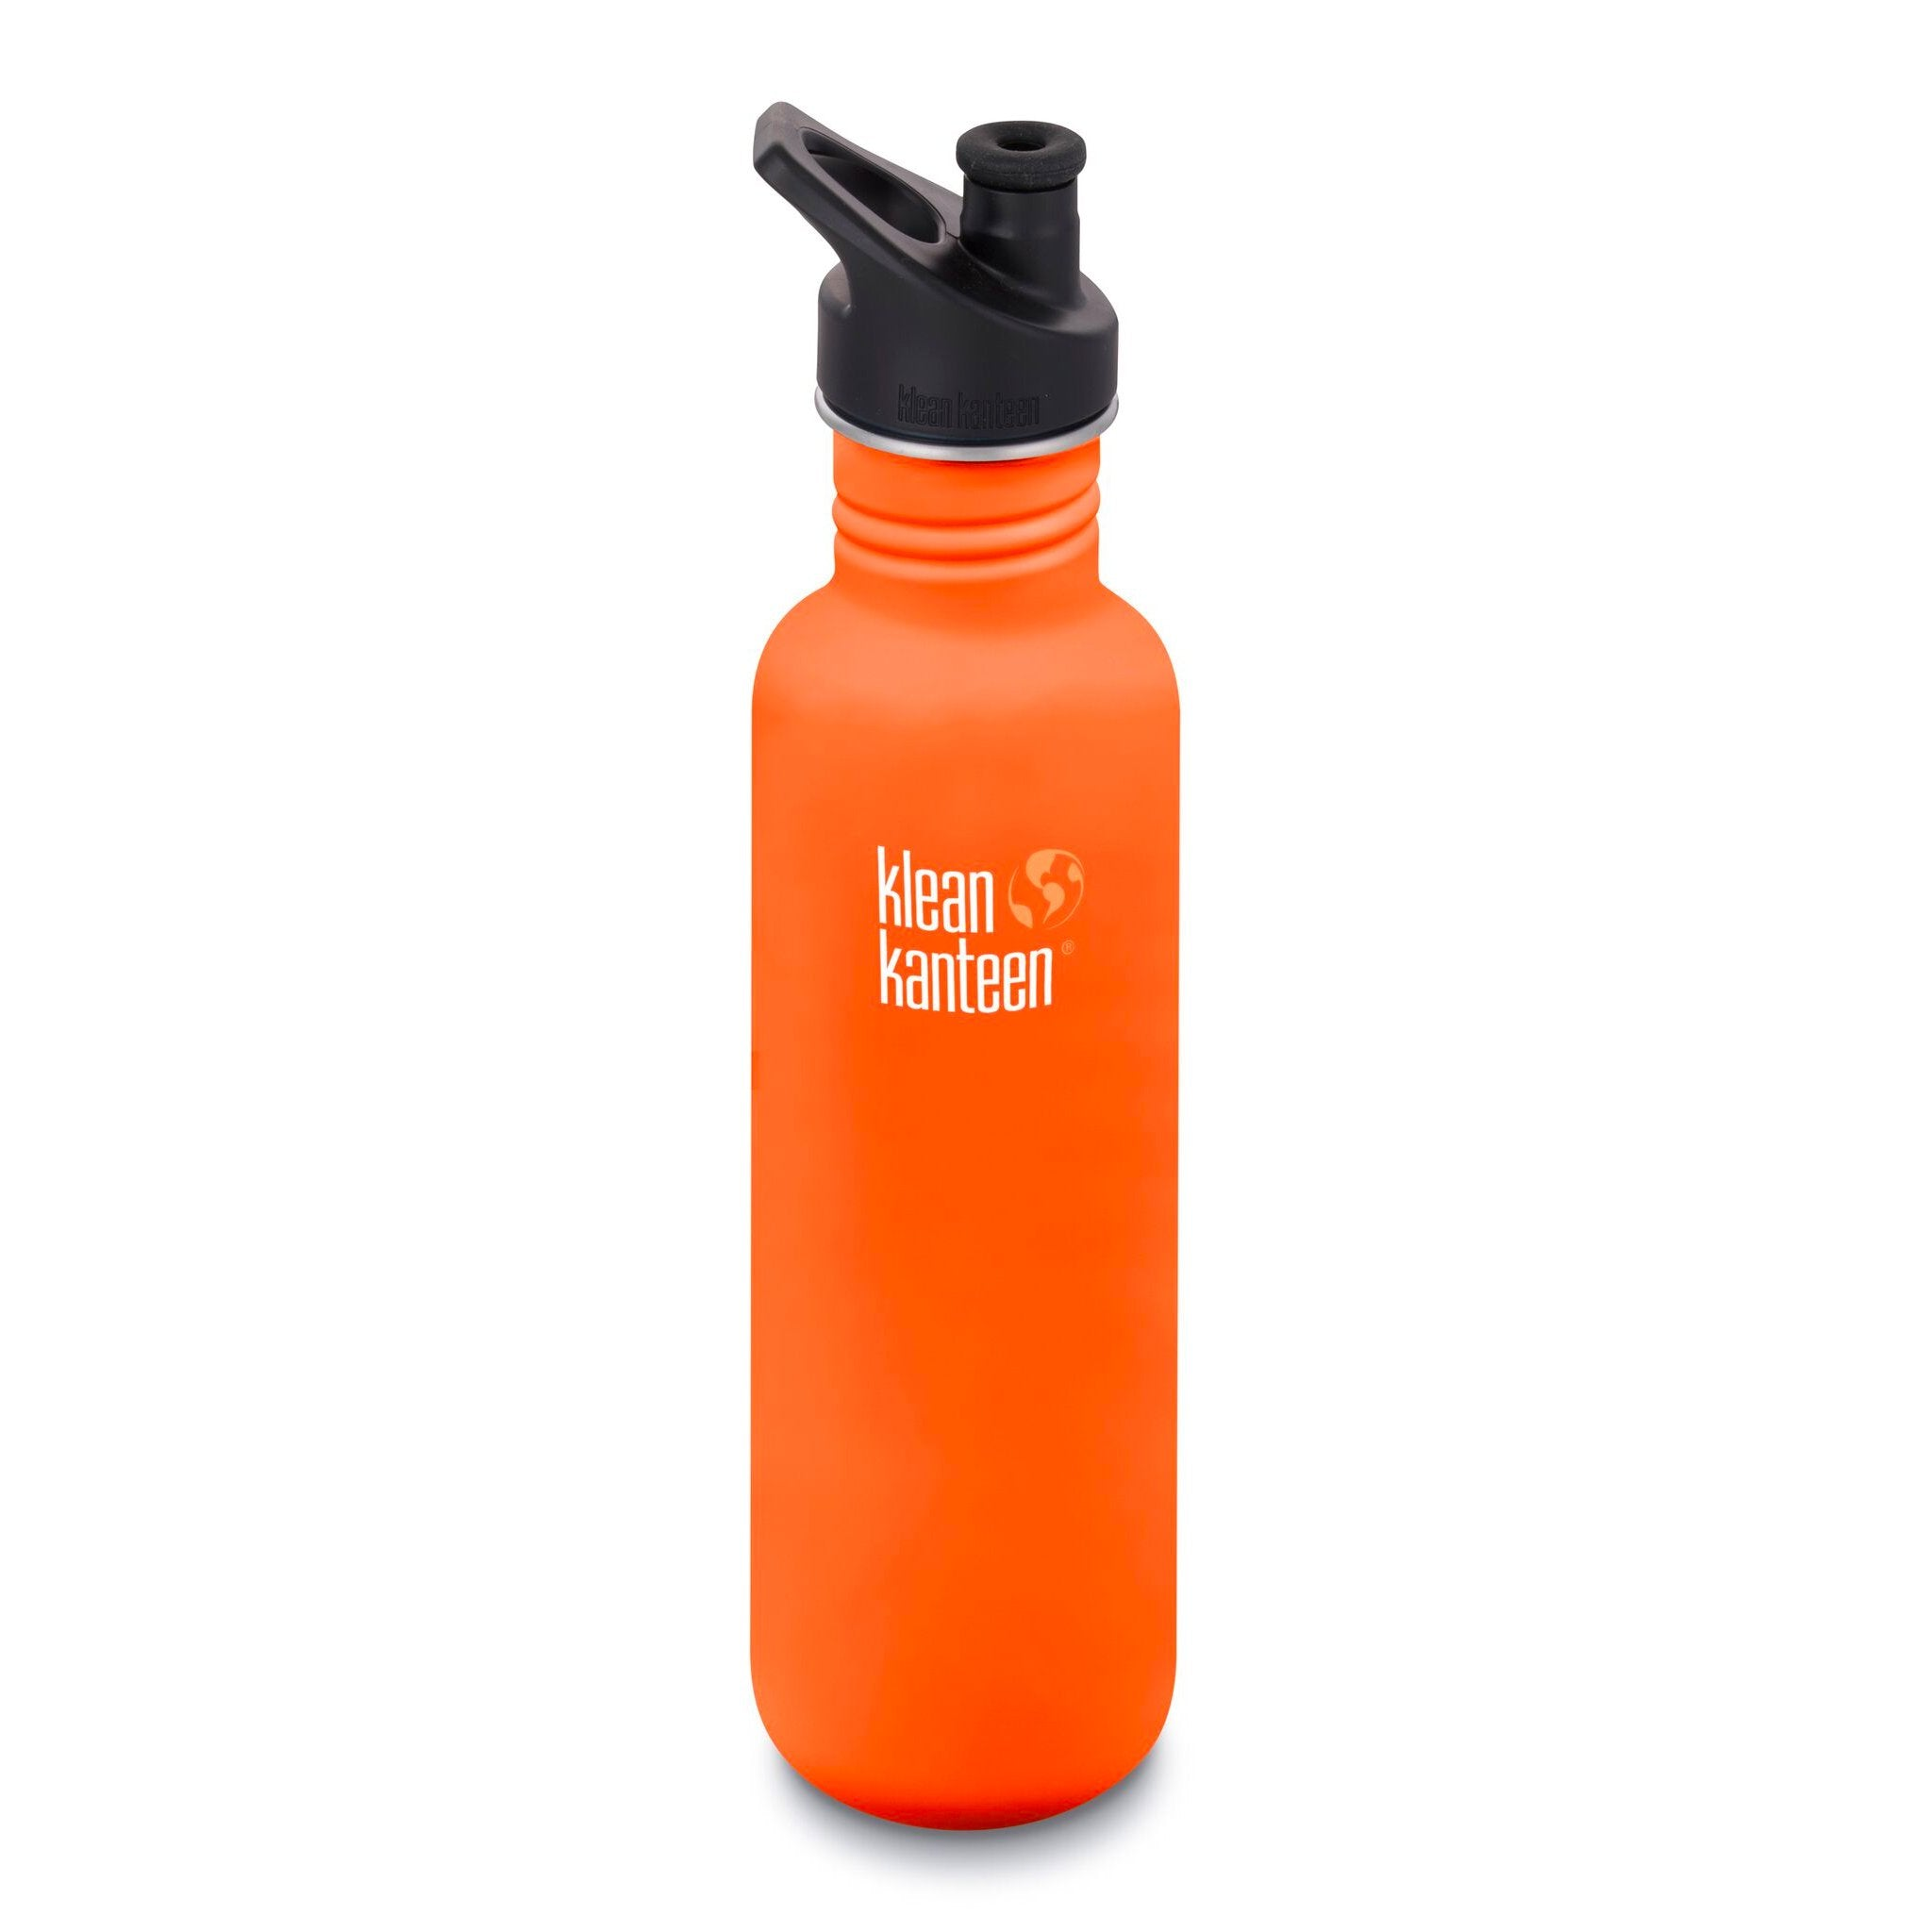 Klean Kanteen Stainless Steel Classic Water Bottle Klean Kanteen Water Bottles 800ml 27oz / Sierra Sunset at Little Earth Nest Eco Shop